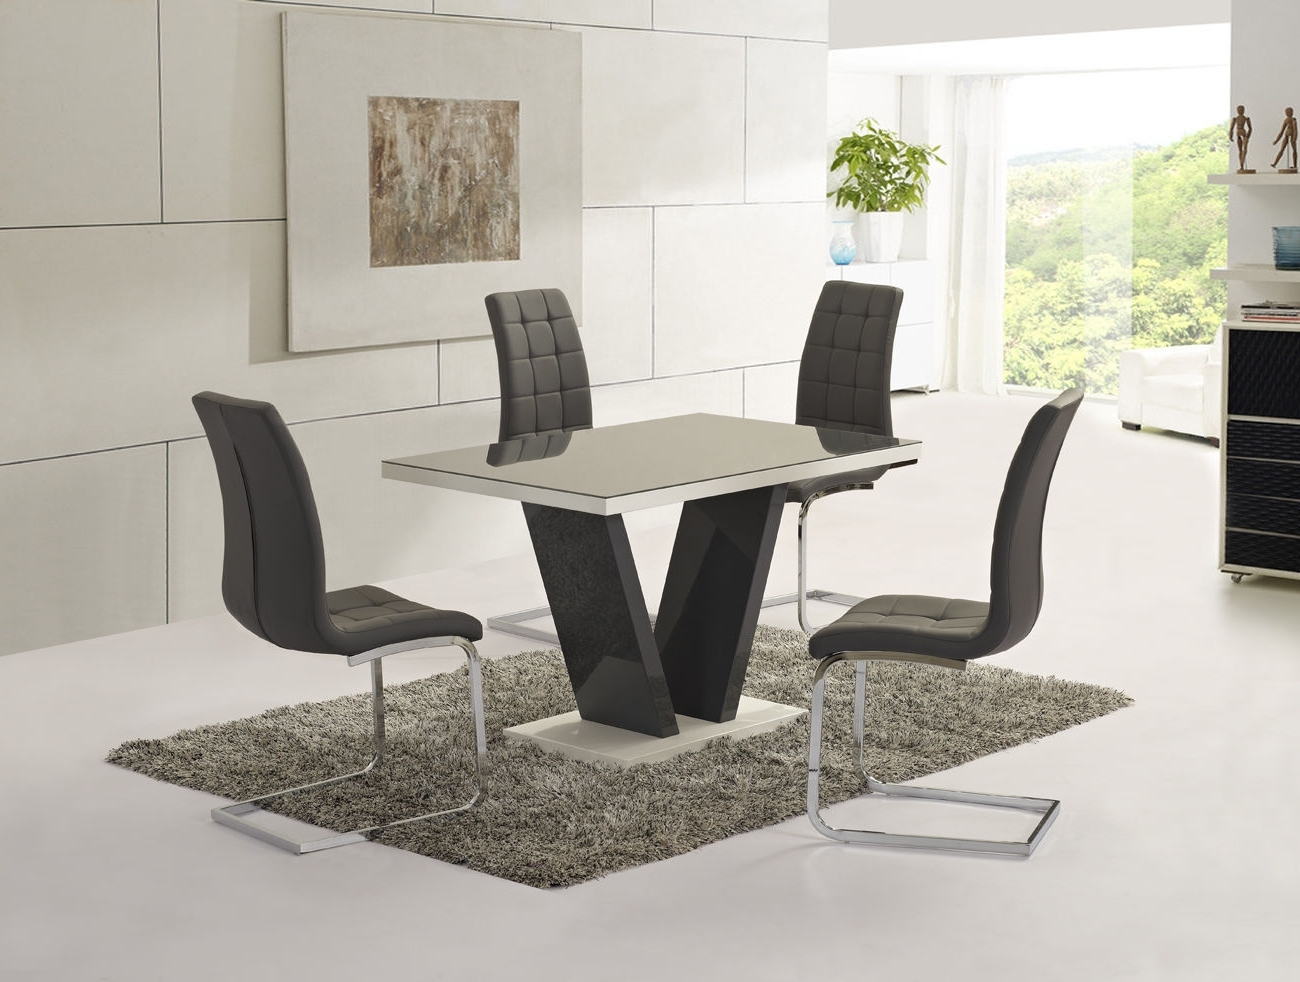 Ga Vico Gloss Grey Glass Top Designer 160Cm Dining Set – 4 6 Grey With Best And Newest White High Gloss Dining Chairs (View 3 of 25)